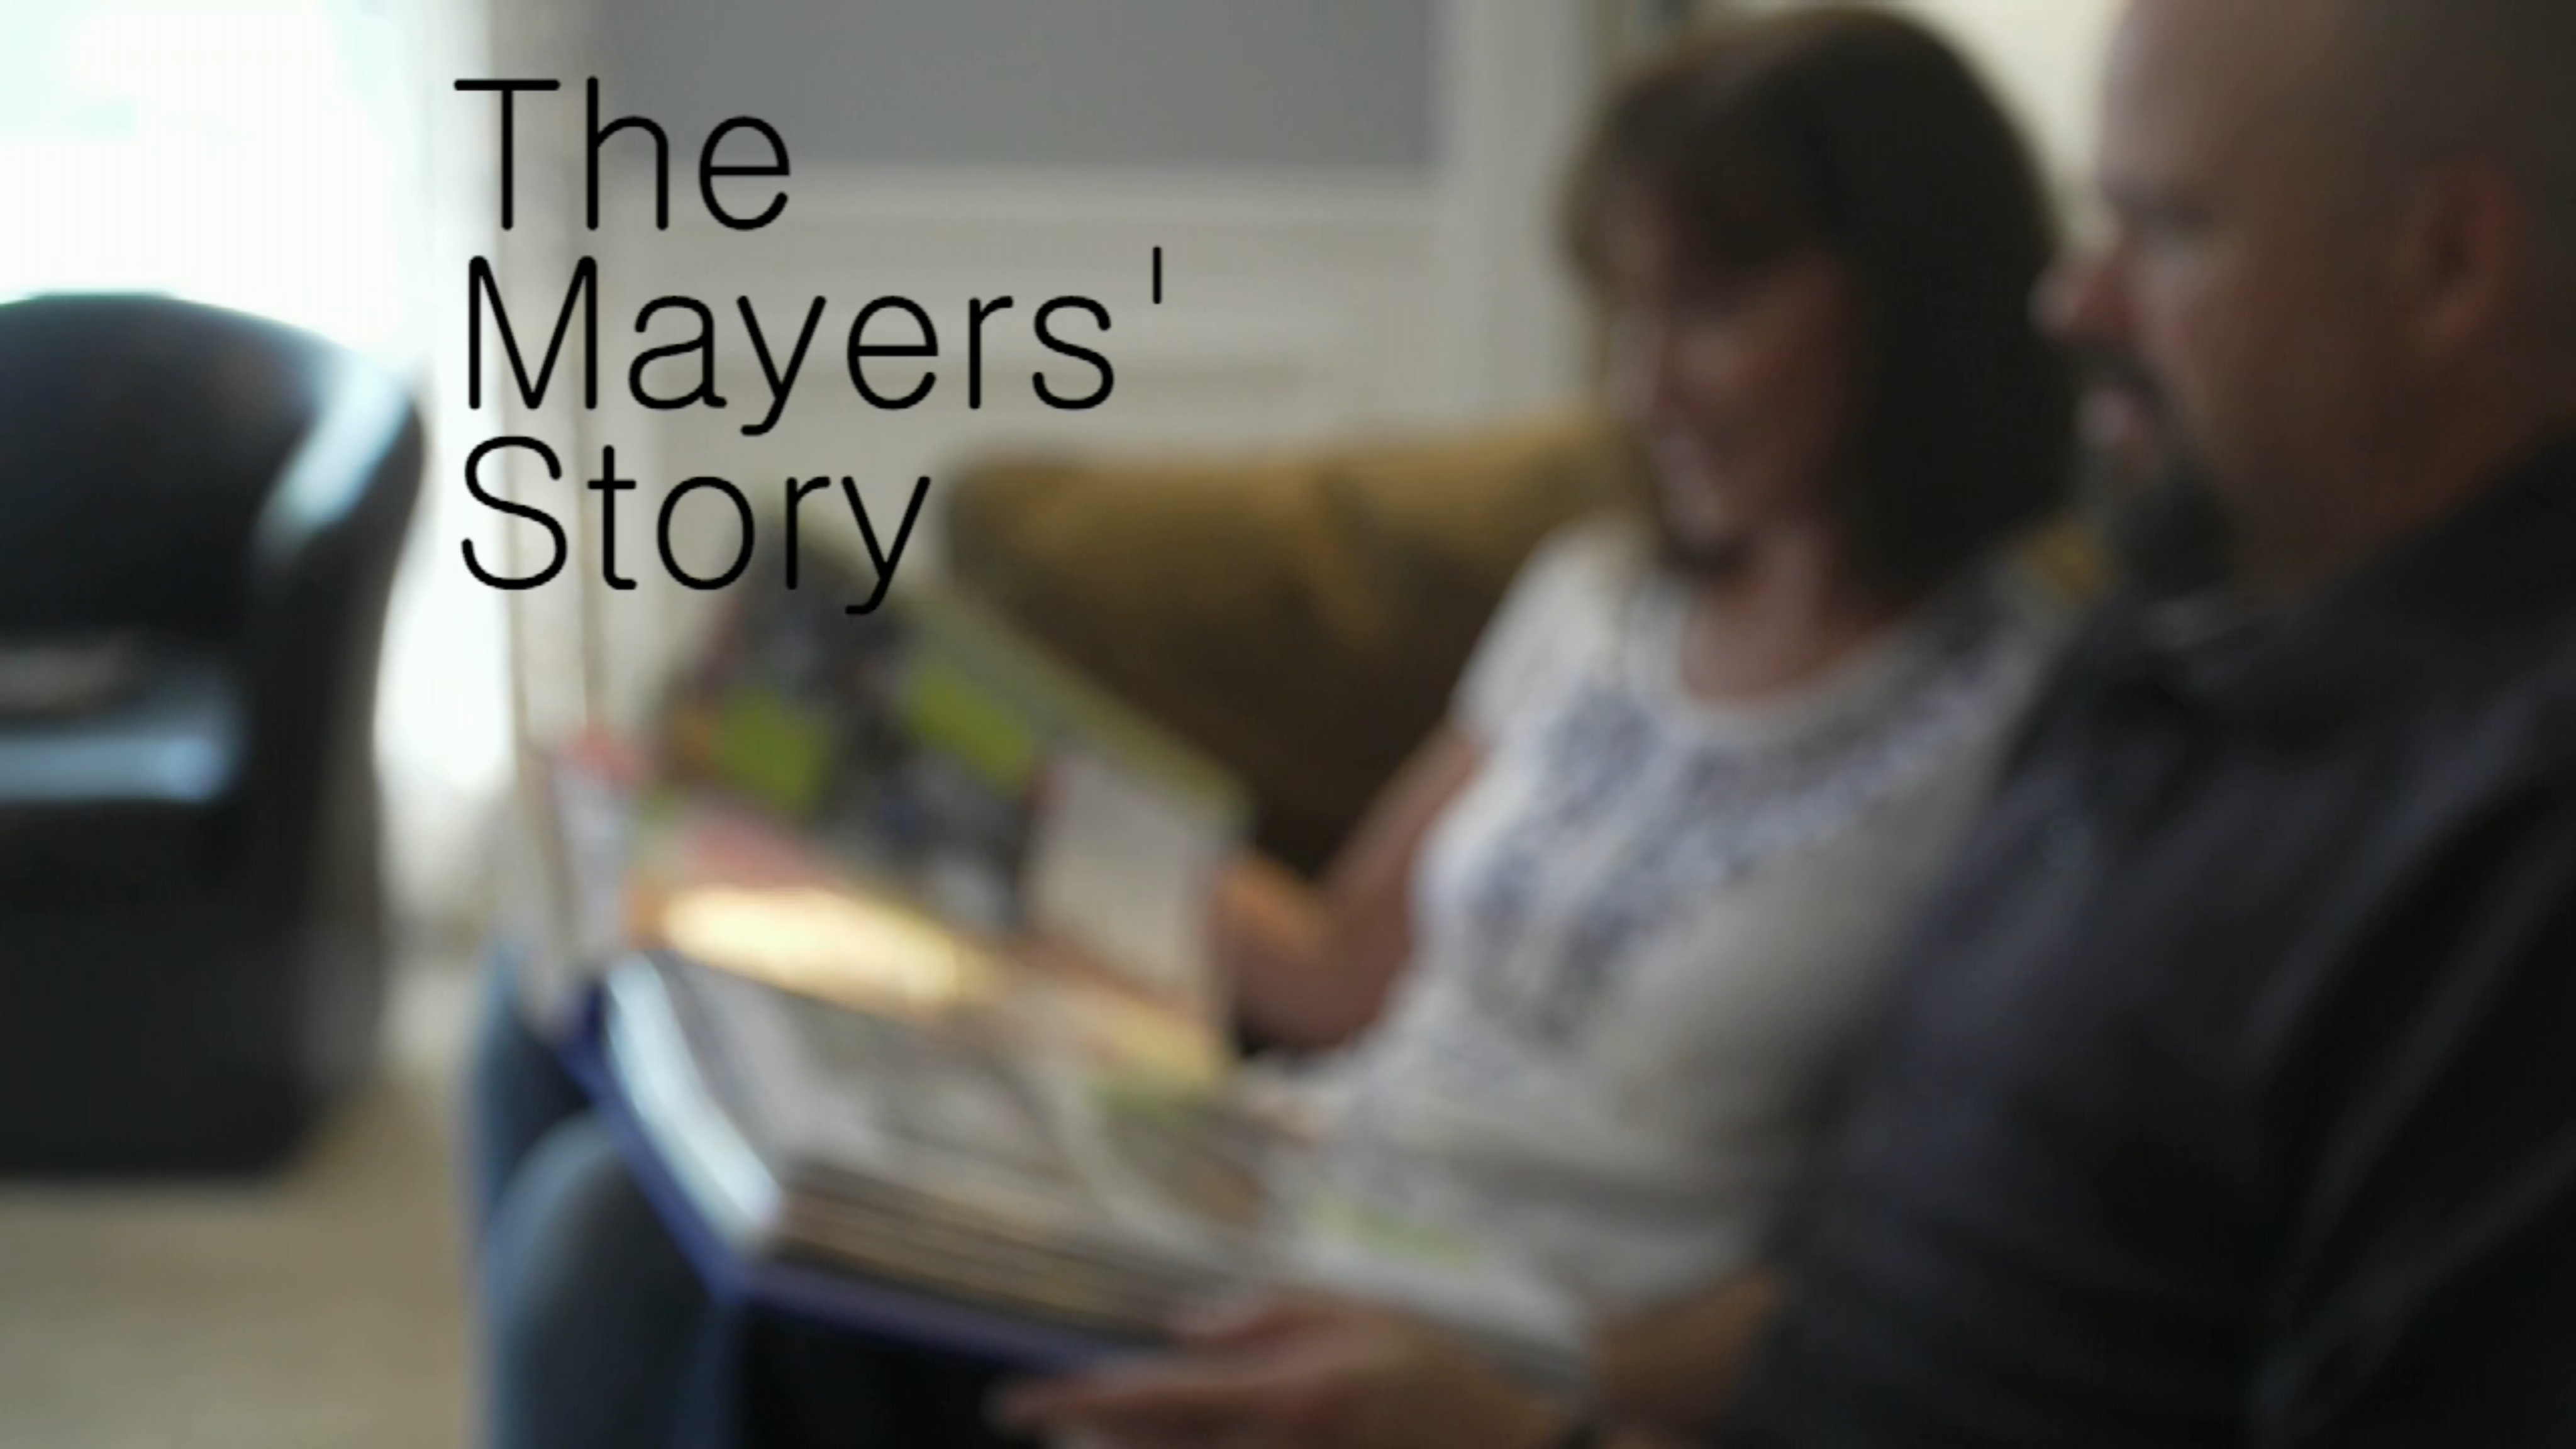 The Mayer's Story